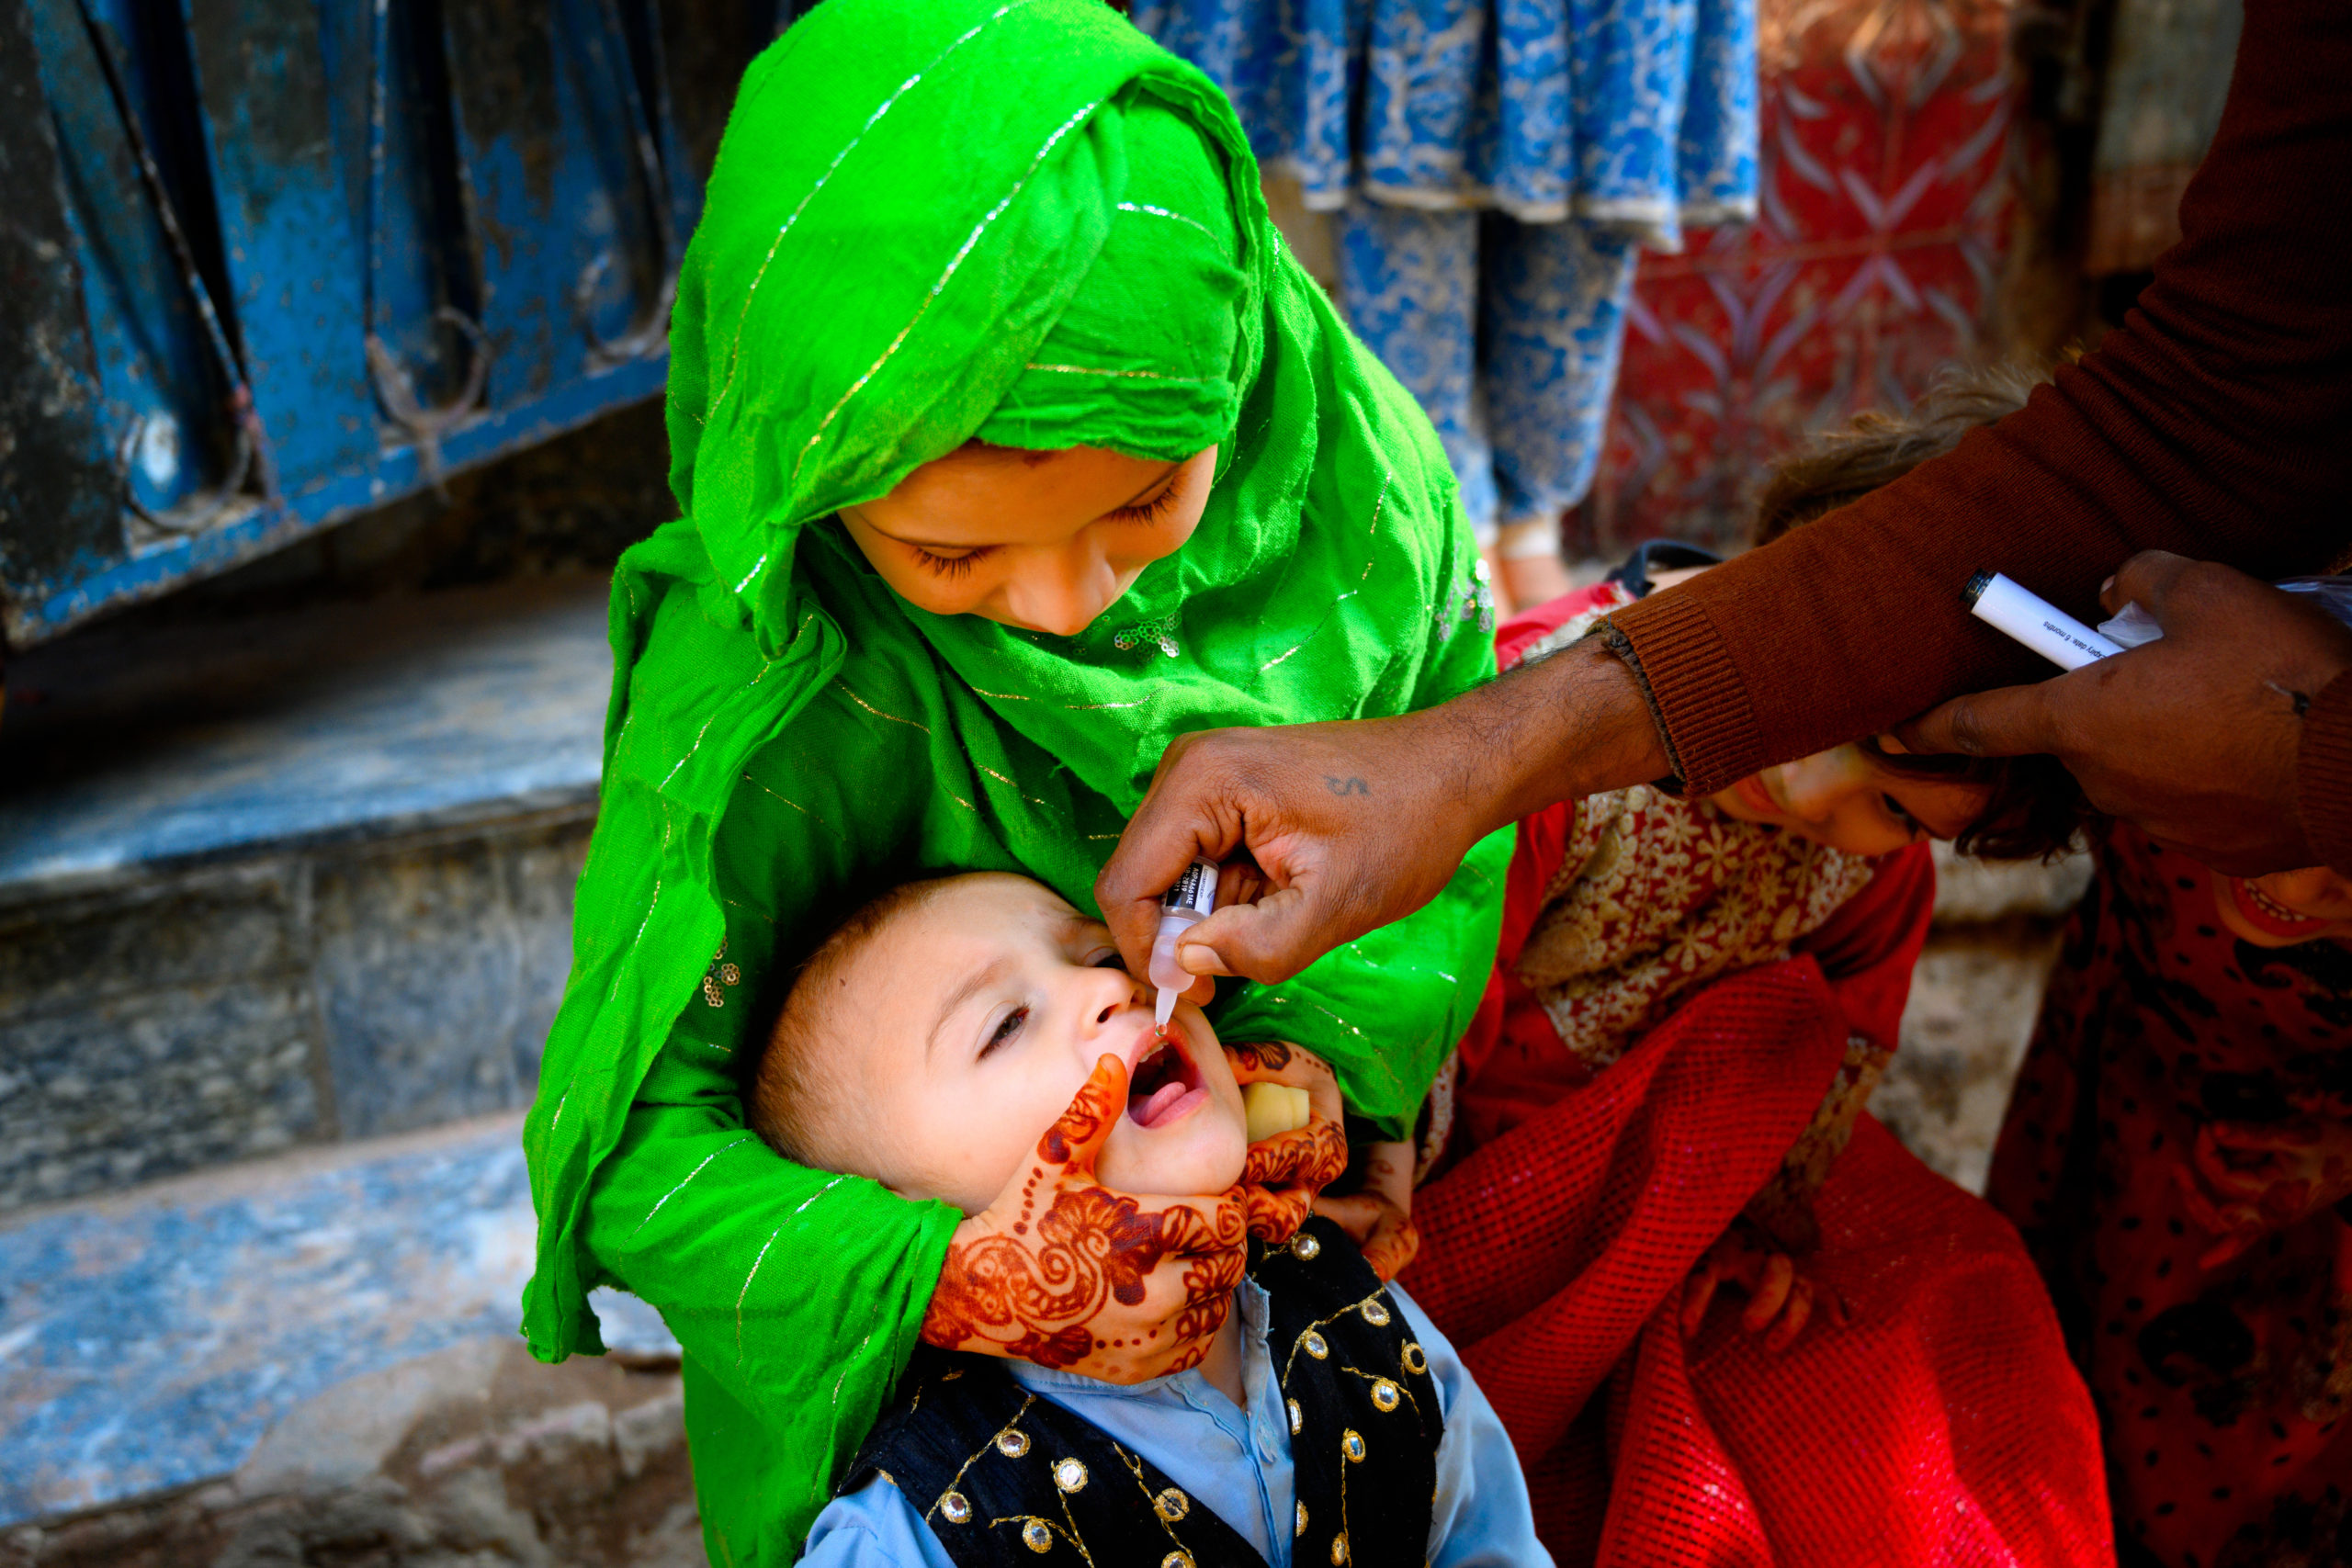 Sister with brother polio vaccination